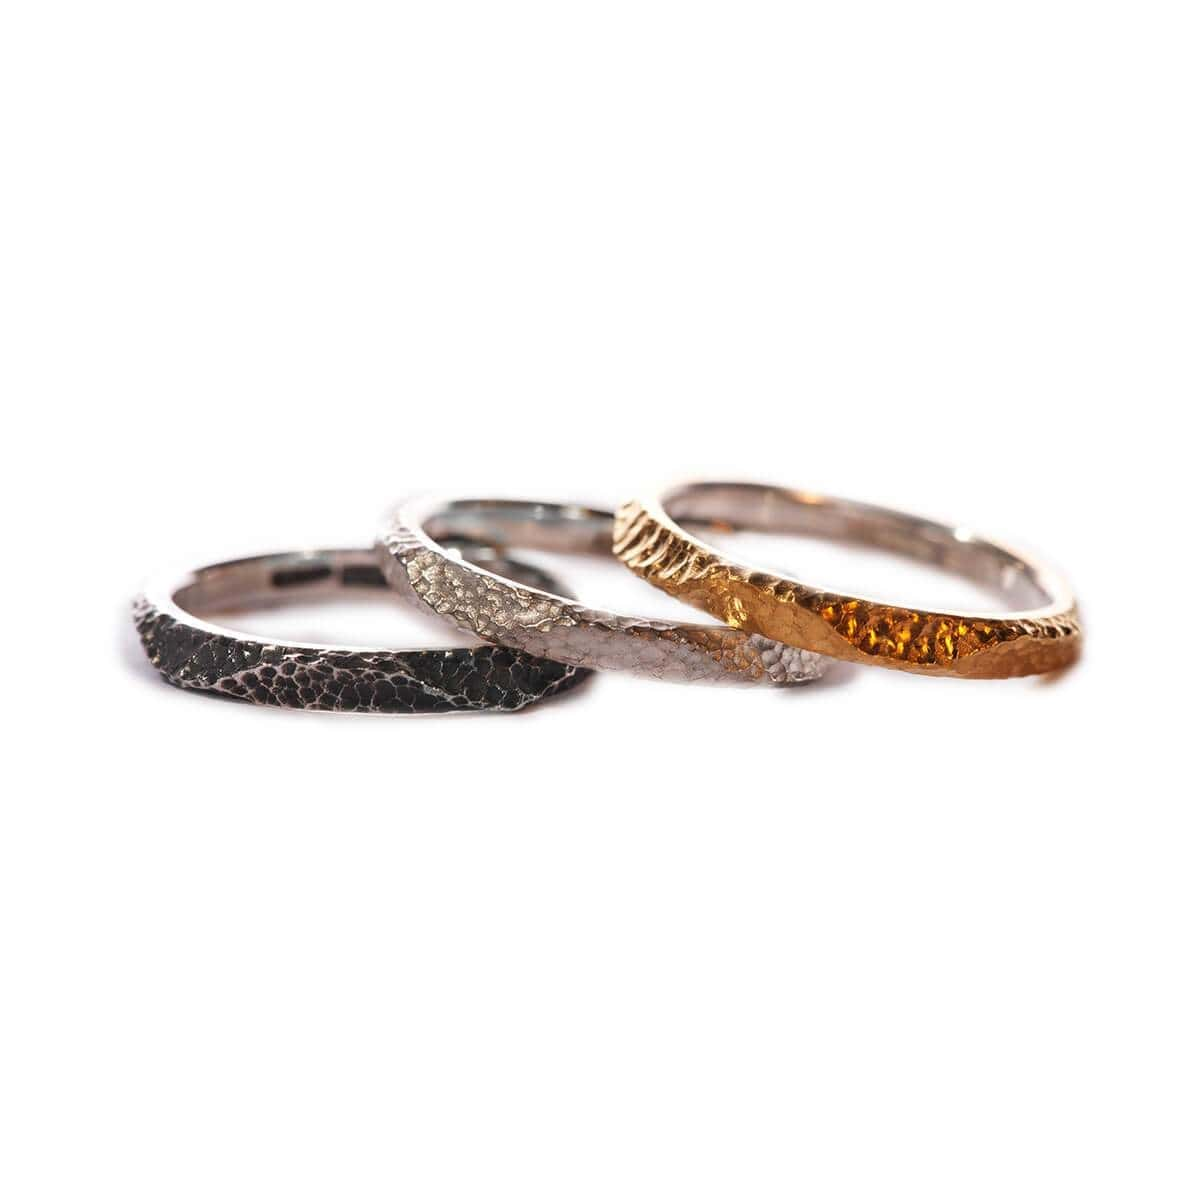 Textured Stacking Rings in Silver, Oxidised Silver, & Gold Plating